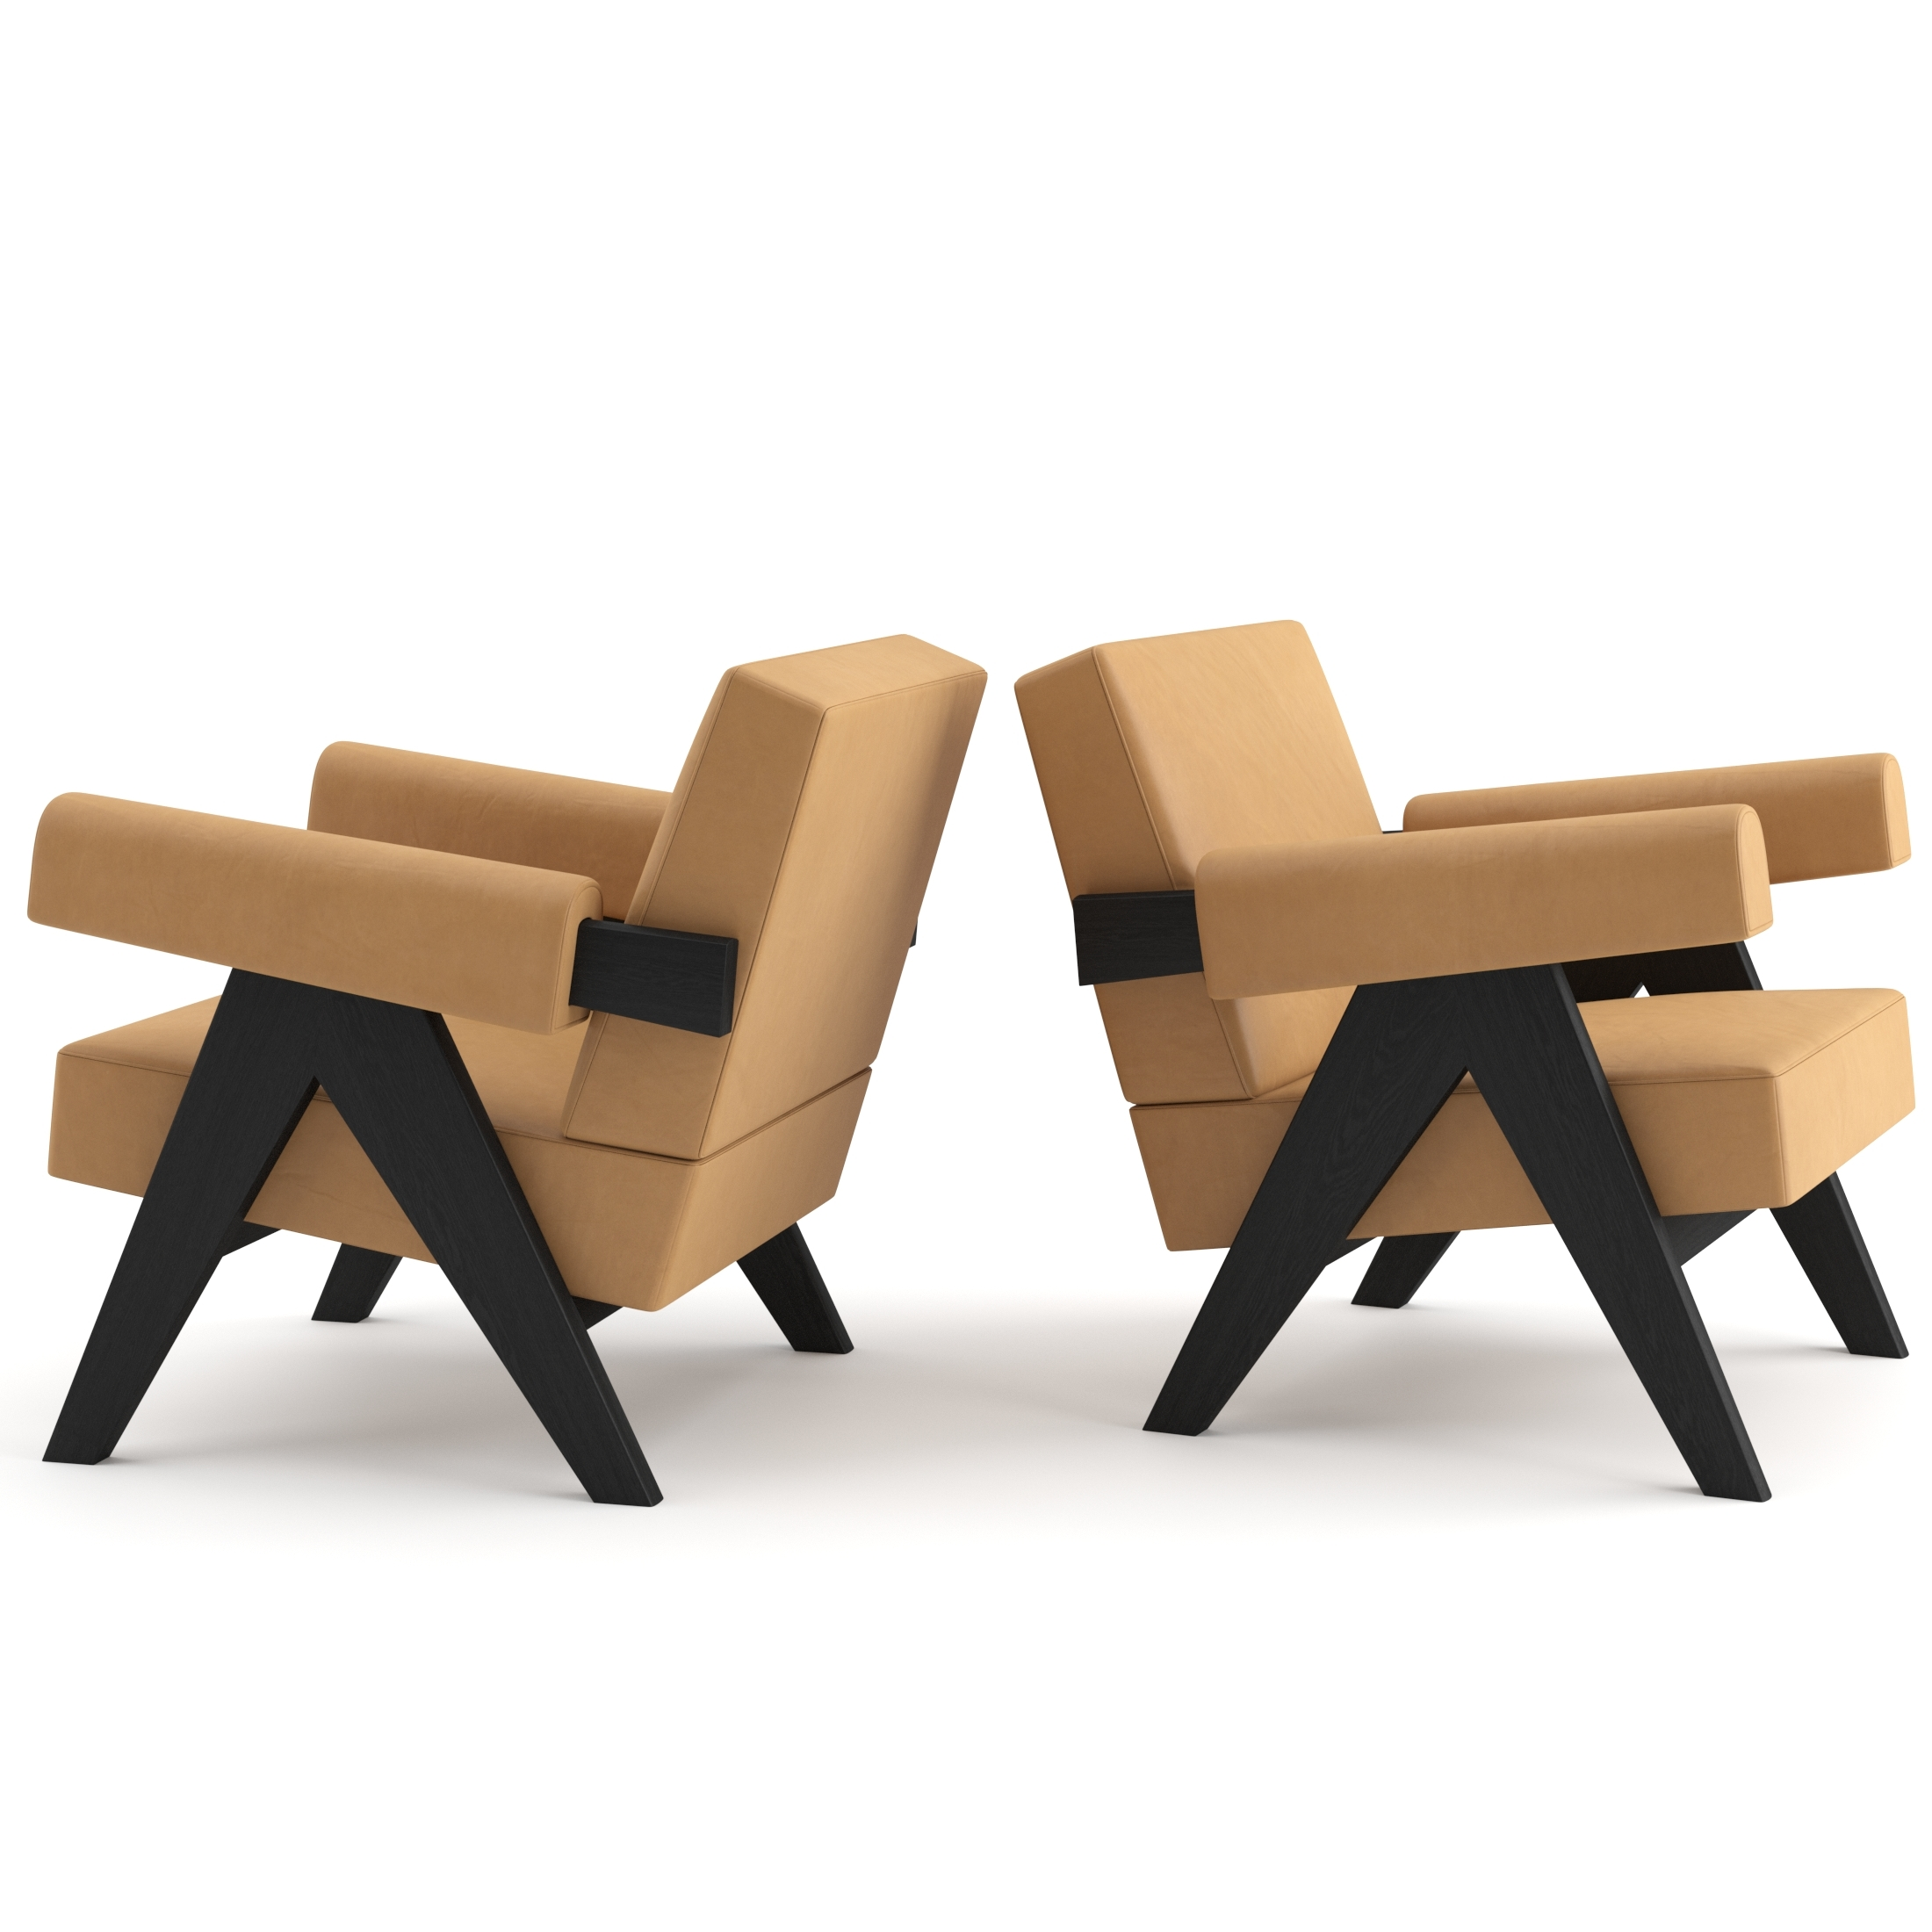 Awe Inspiring Capitol Complex Armchair By Cassina Evergreenethics Interior Chair Design Evergreenethicsorg